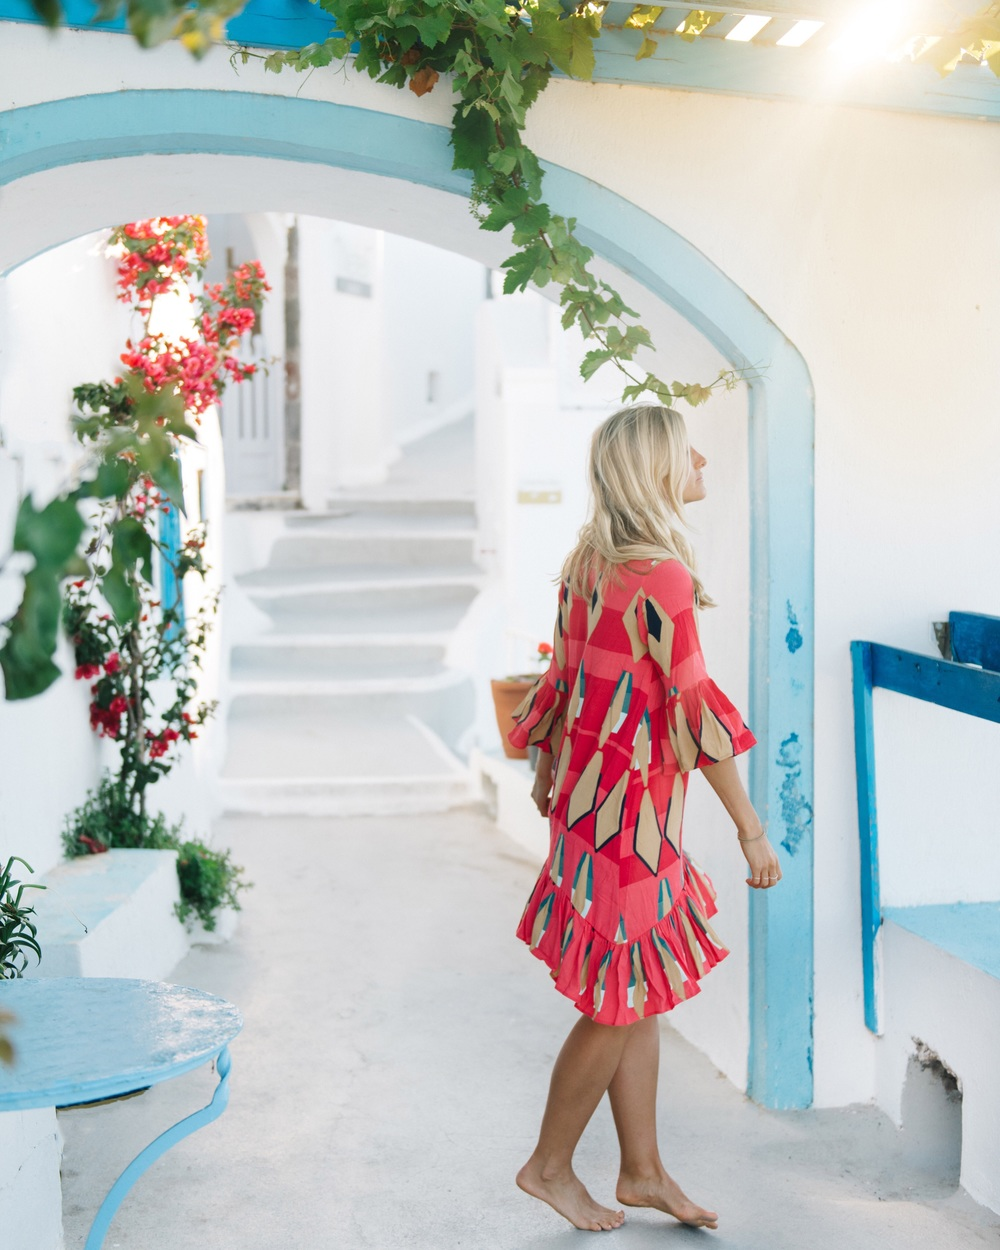 Streets of Santorini, Fira. Dress: Mister Zimi